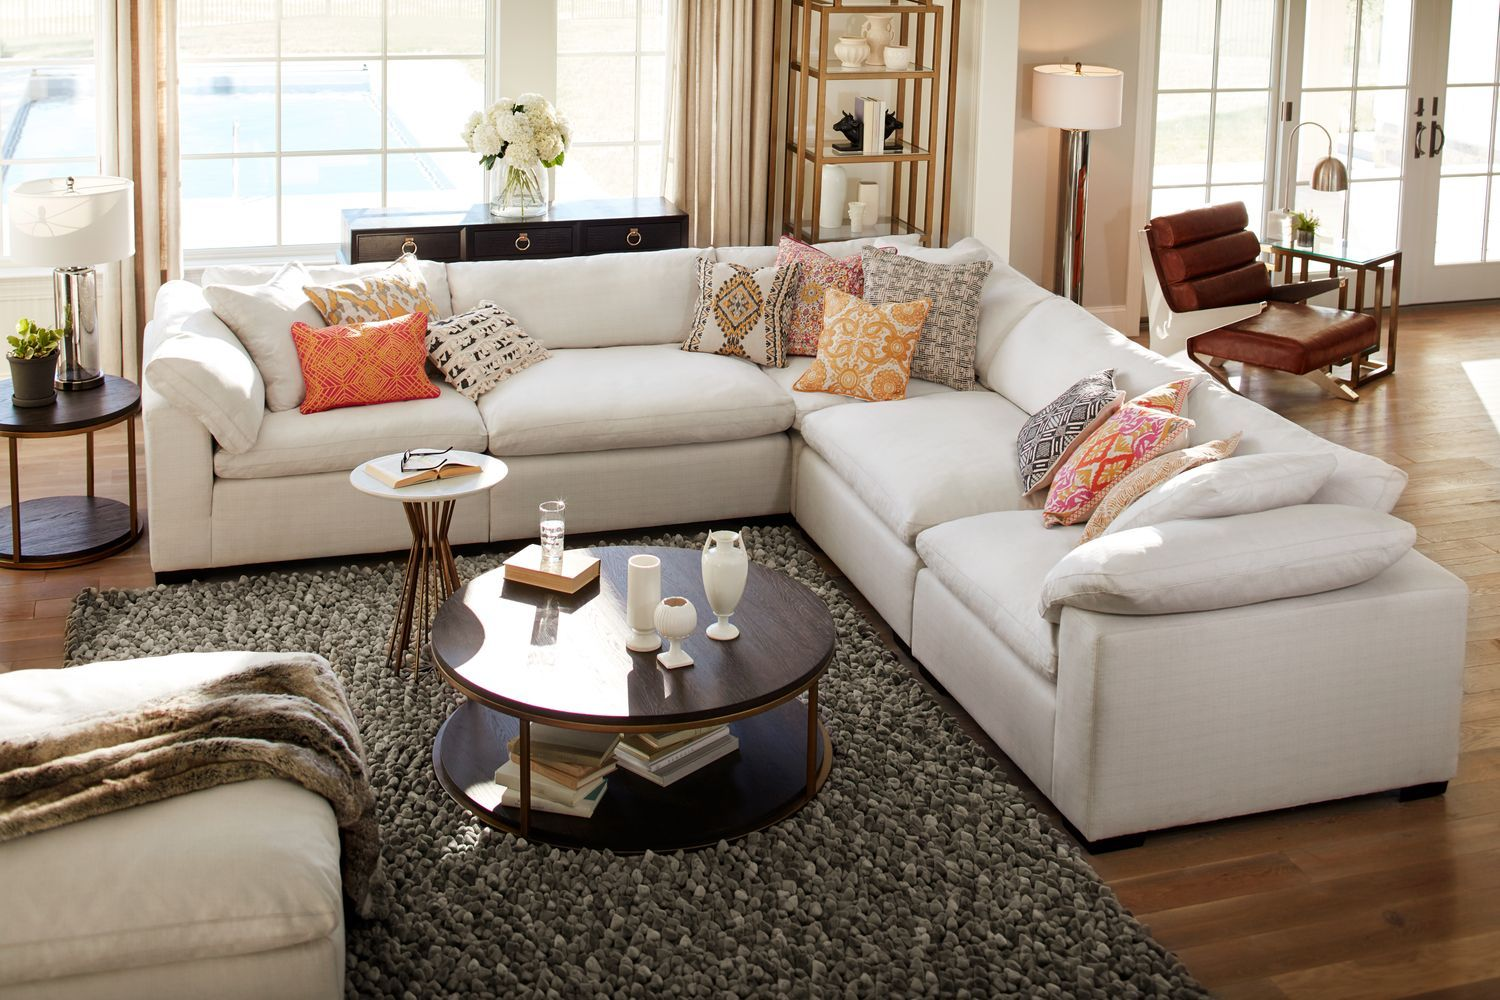 5 Piece Sectional Sofa With Chaise